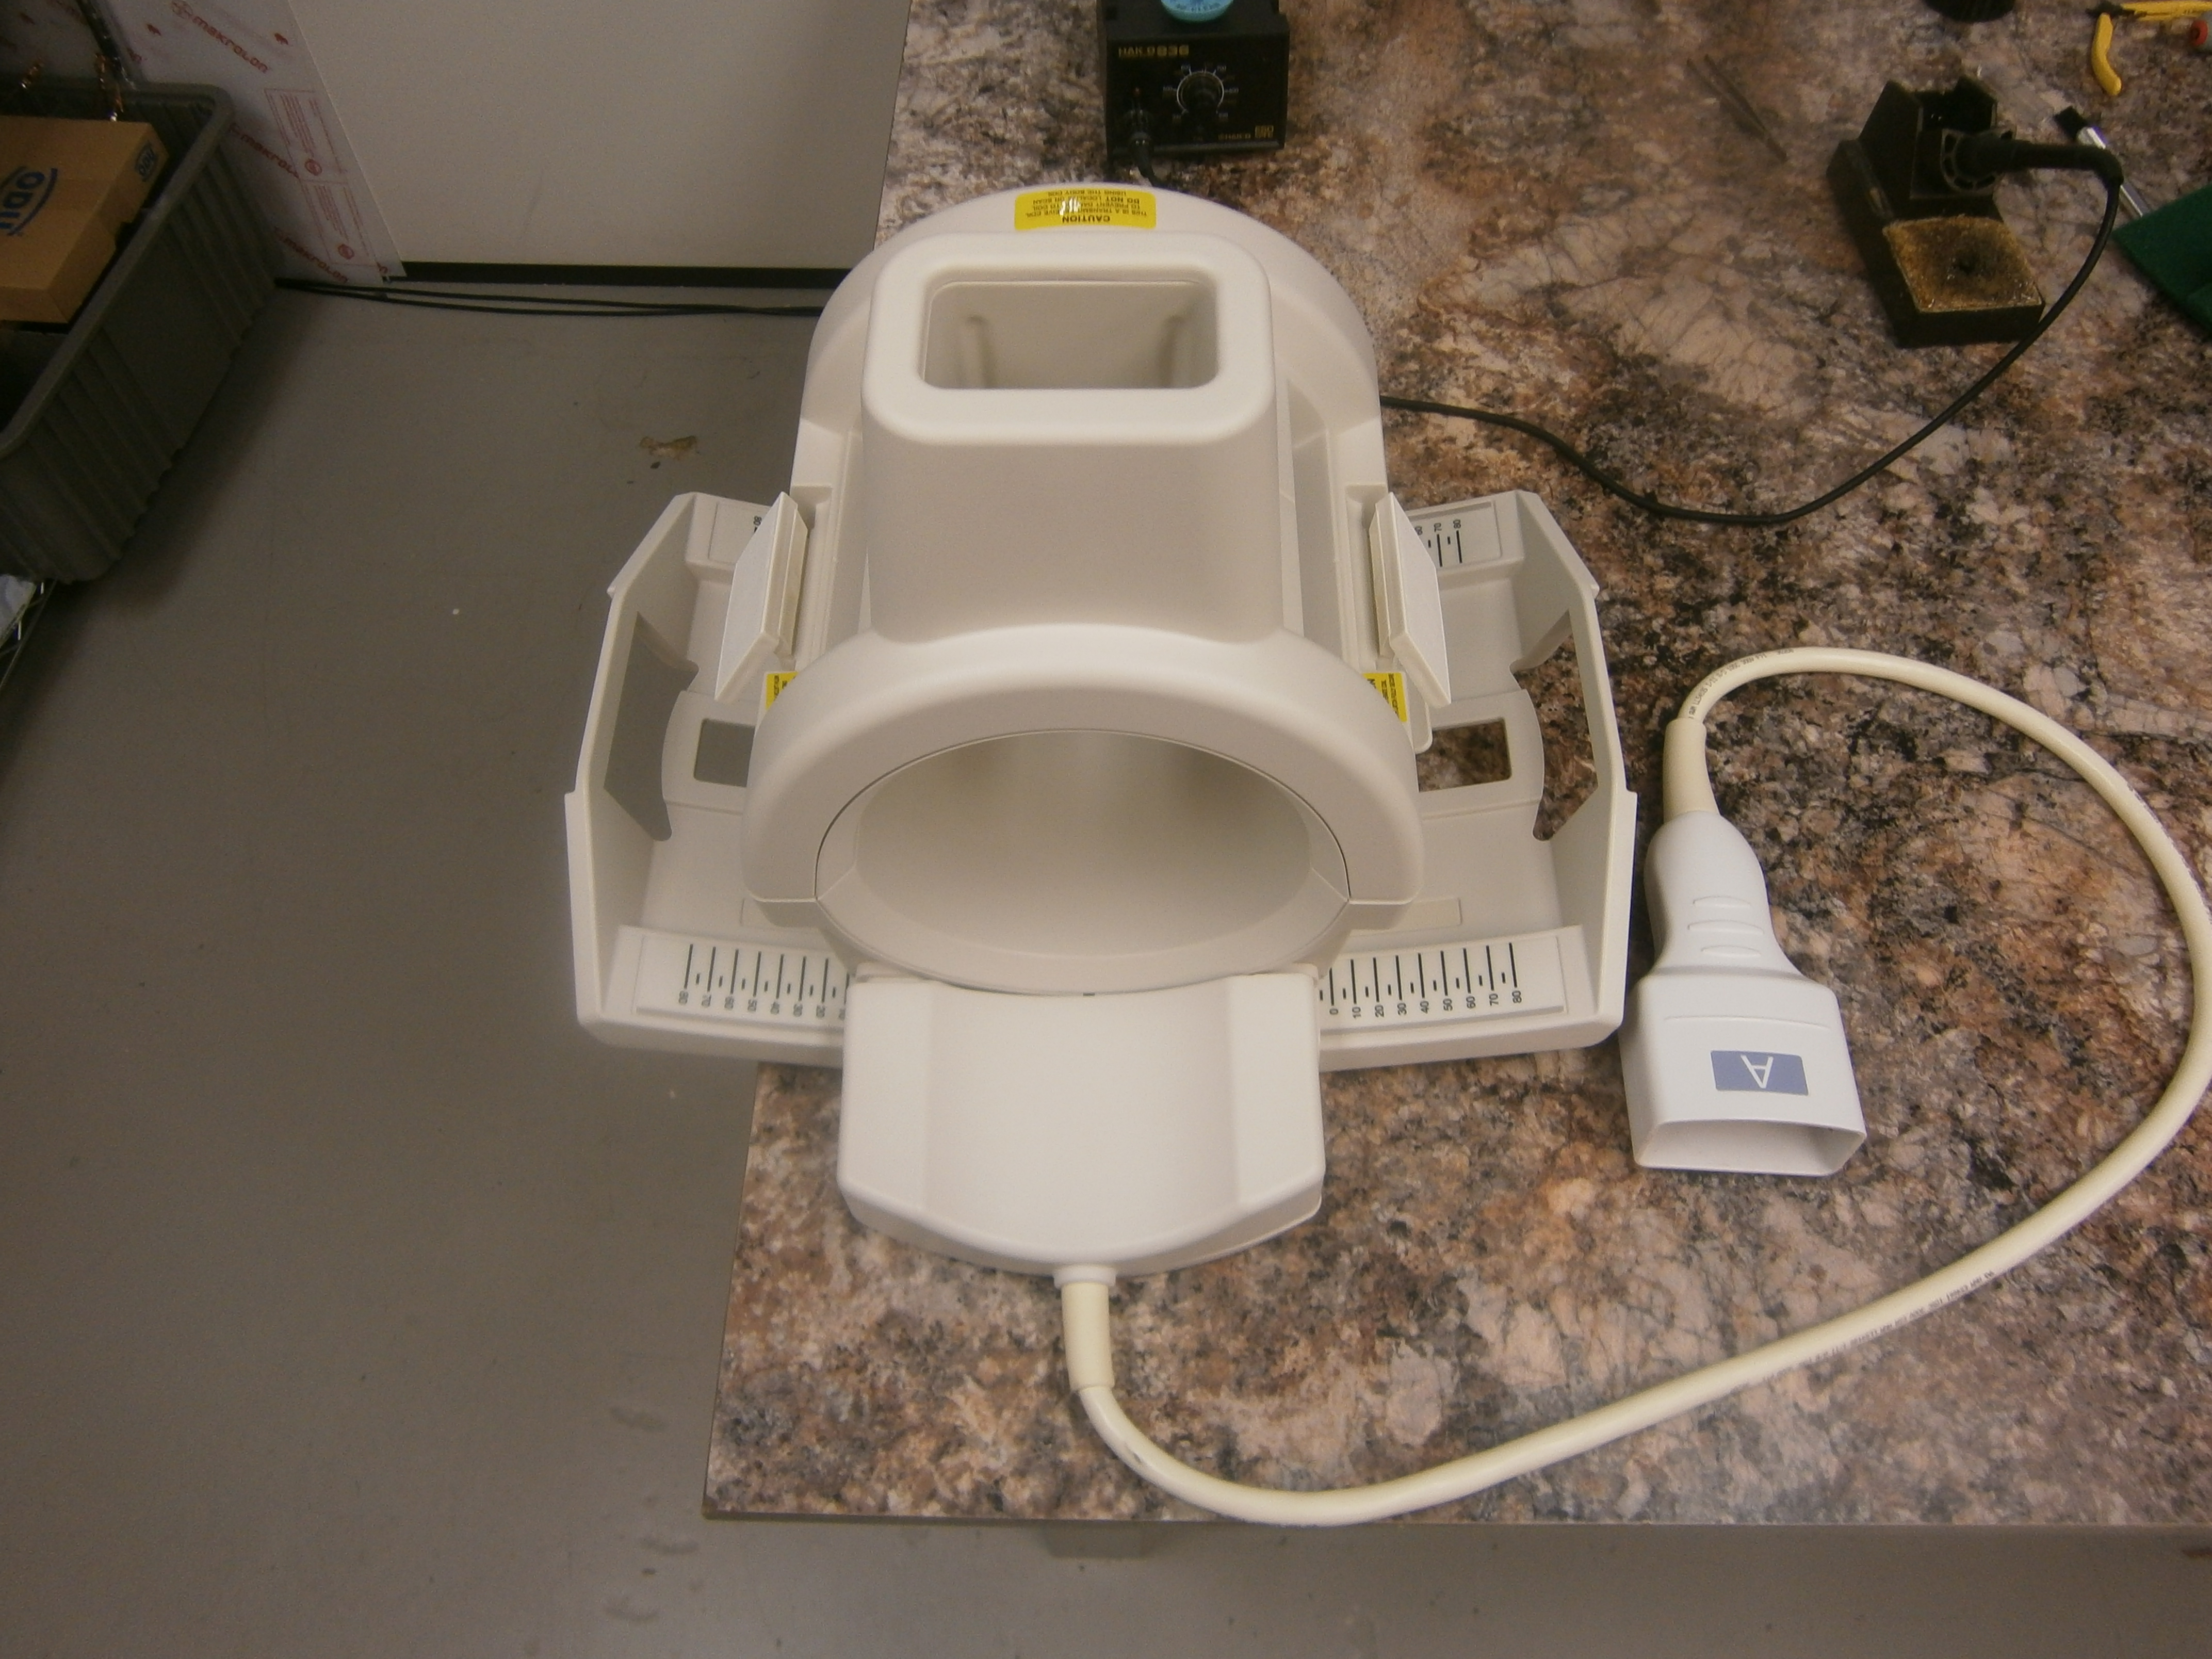 Ge Mri Profile Head Coil Craigslist: Ge Quad Head Coil Transmit Receive